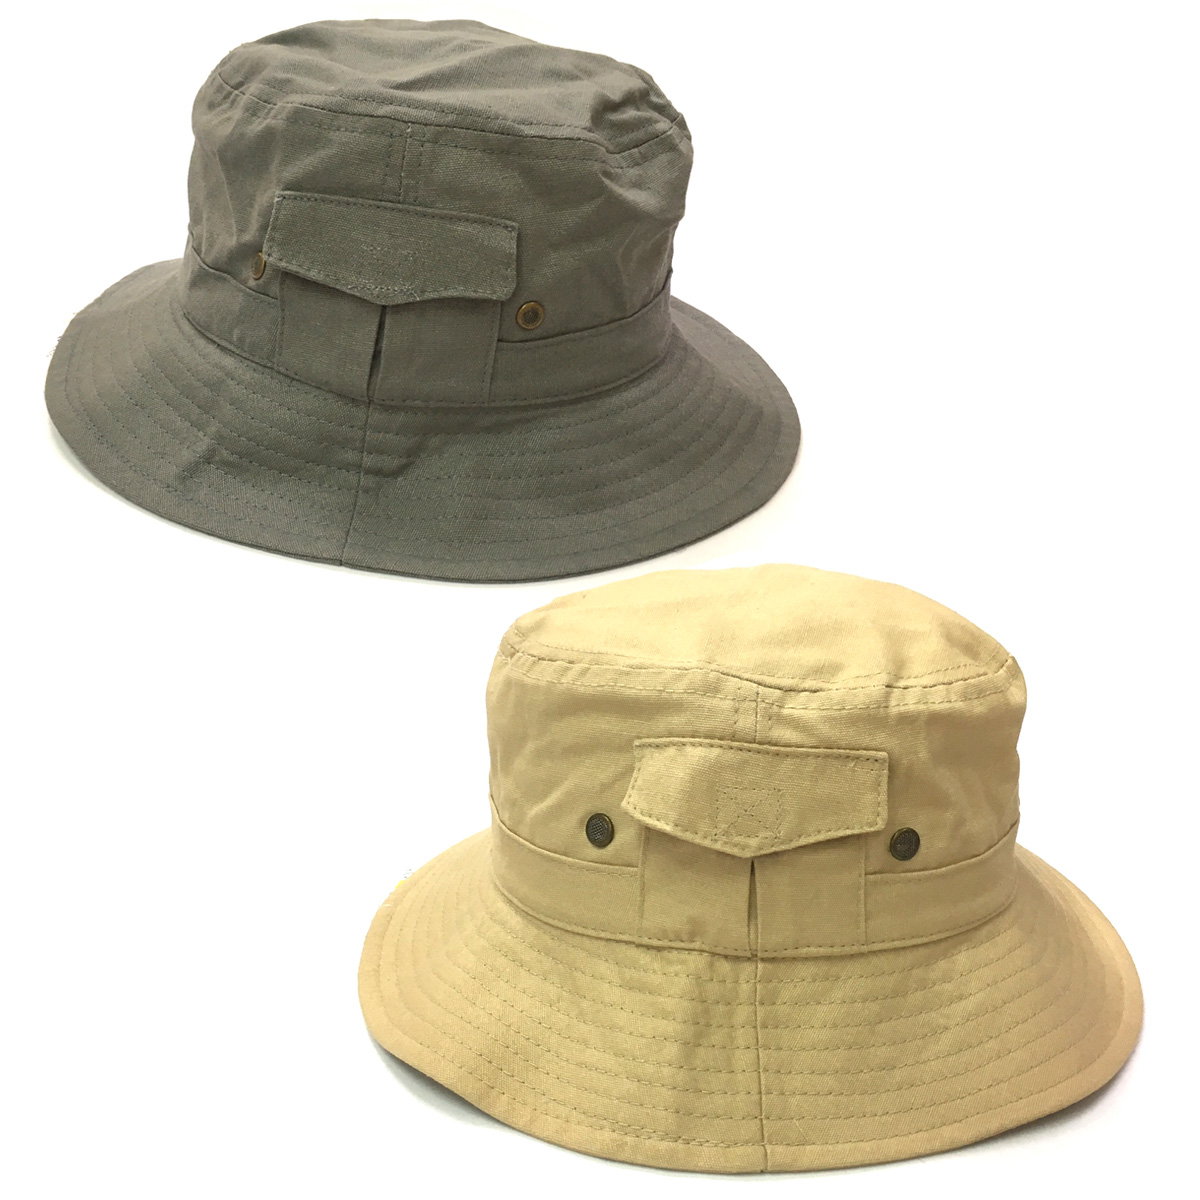 1792c18f9751be Sun hat - Mens hat - Cotton Drill Bucket Hat UPF50+ EXCELLENT PROTECTION  which blocks > ...